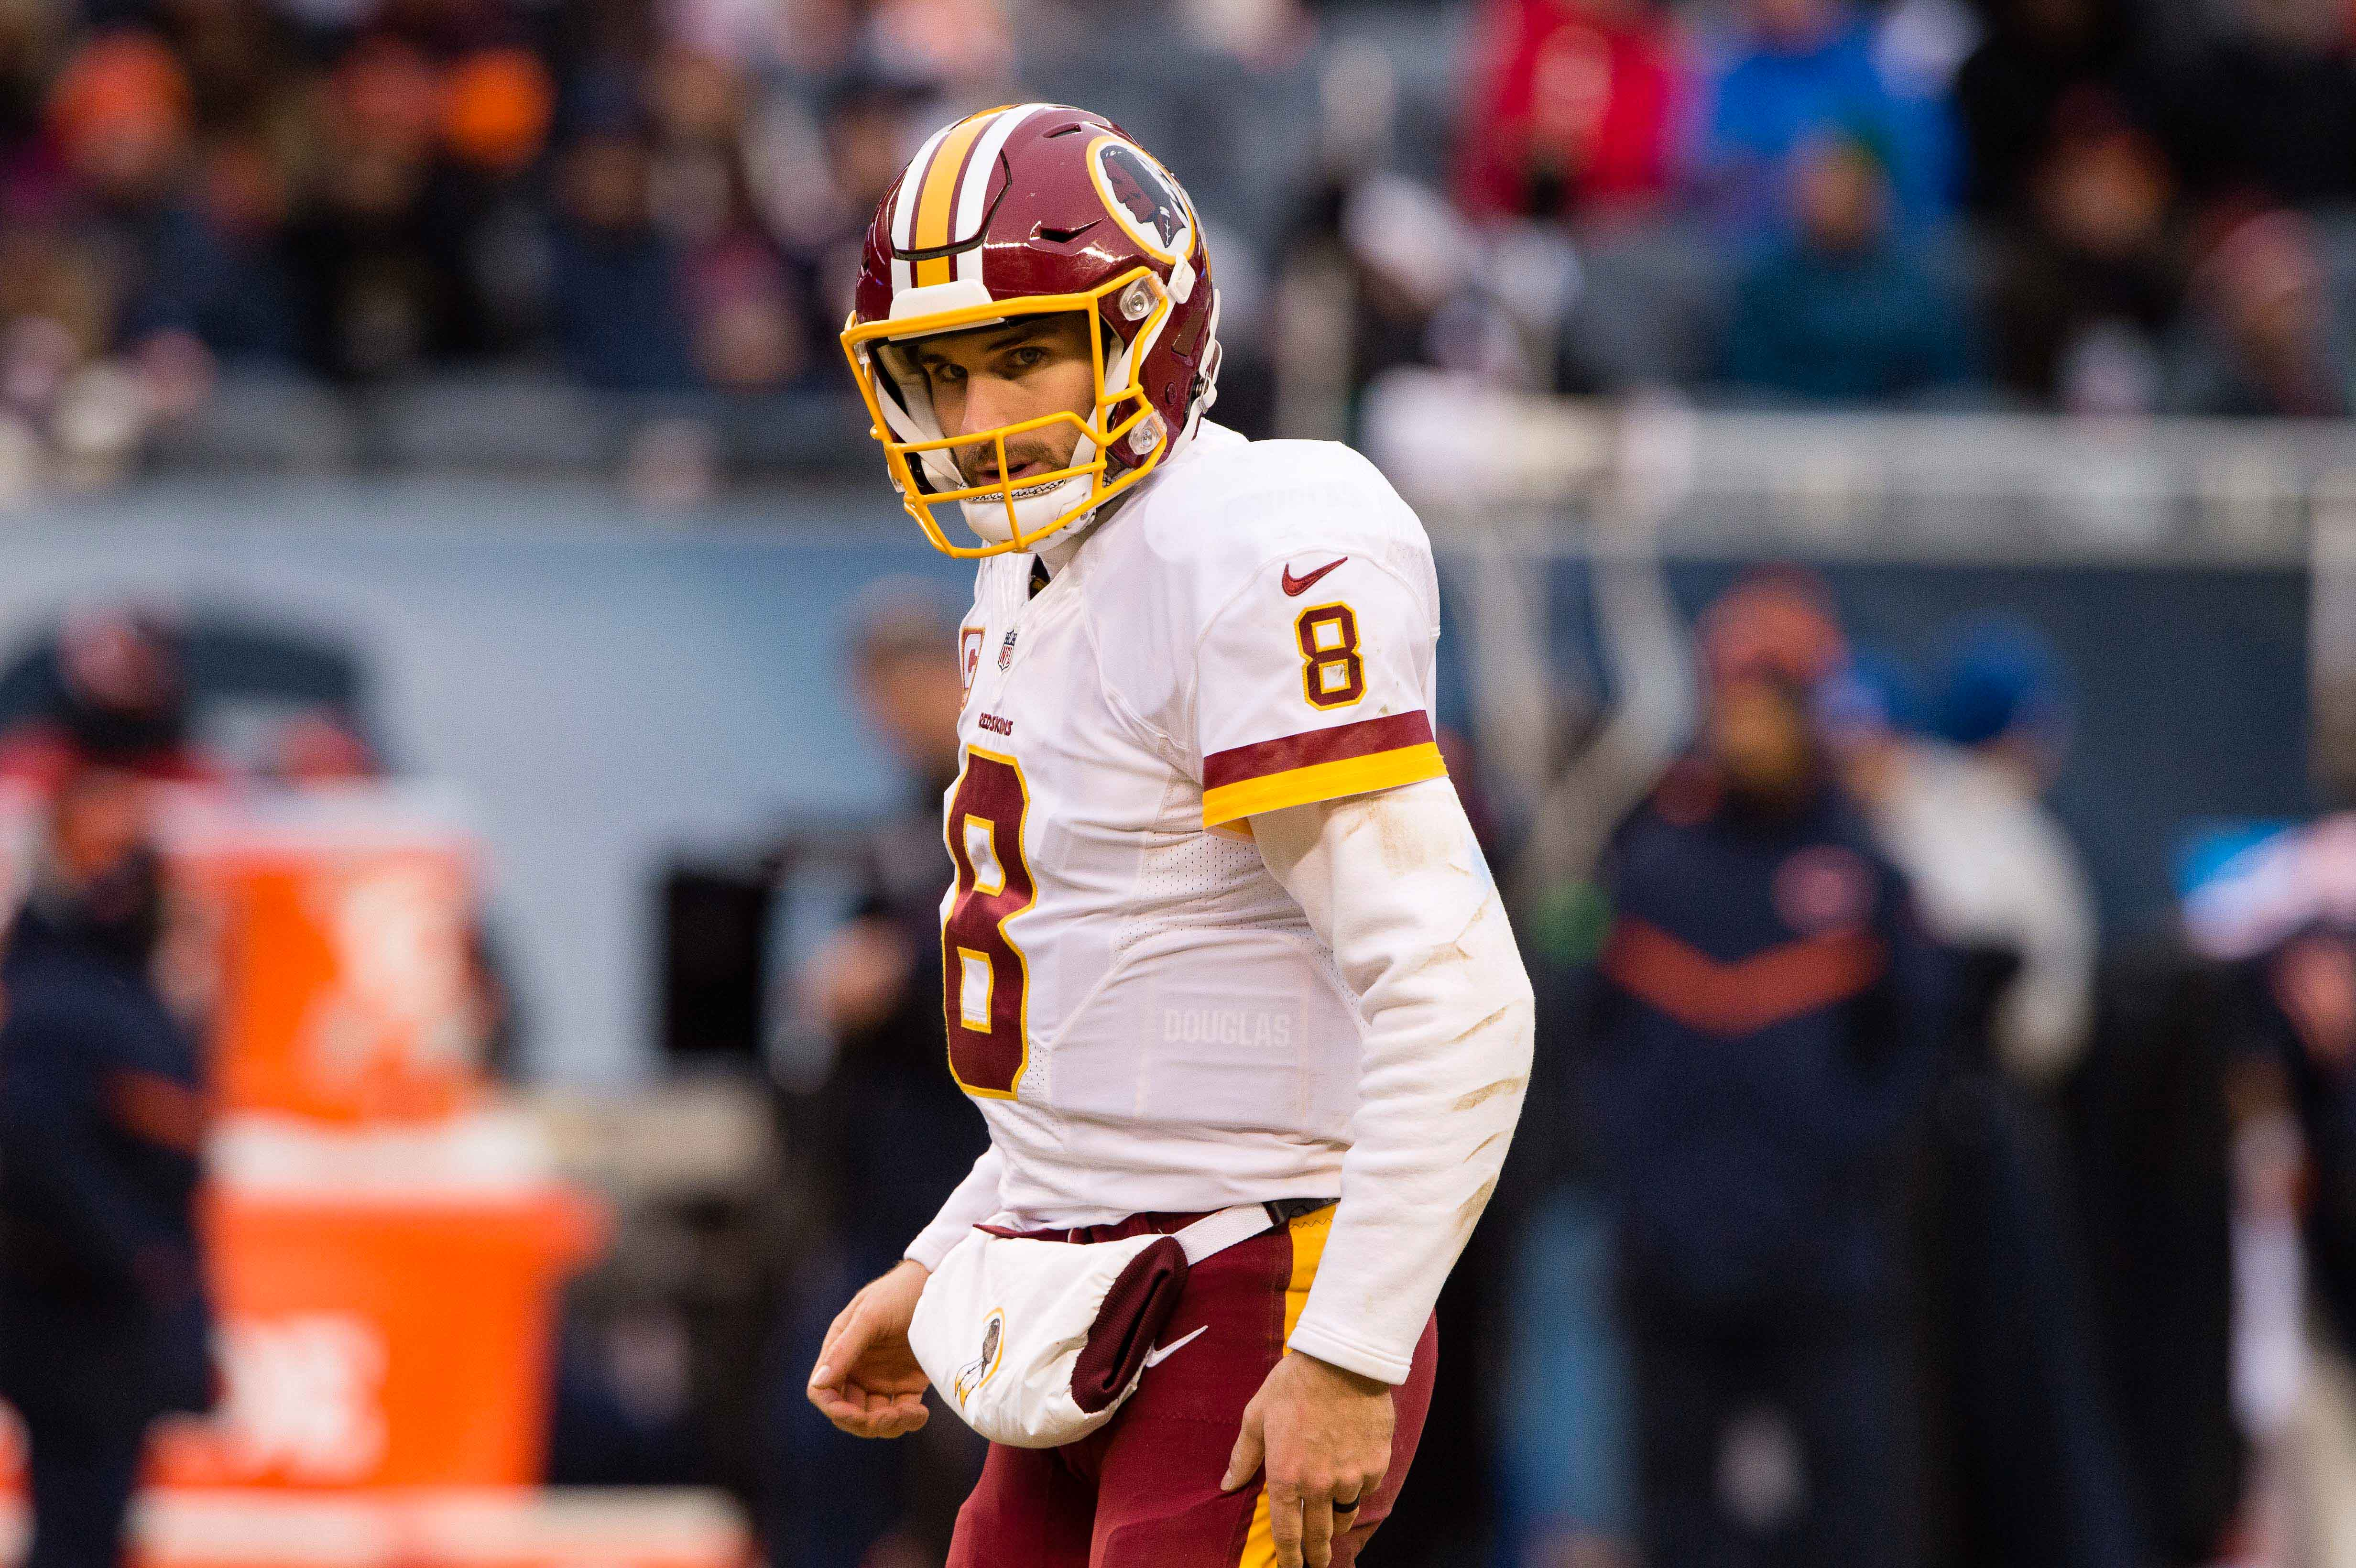 Washington ignoring Kirk Cousins' contract for now